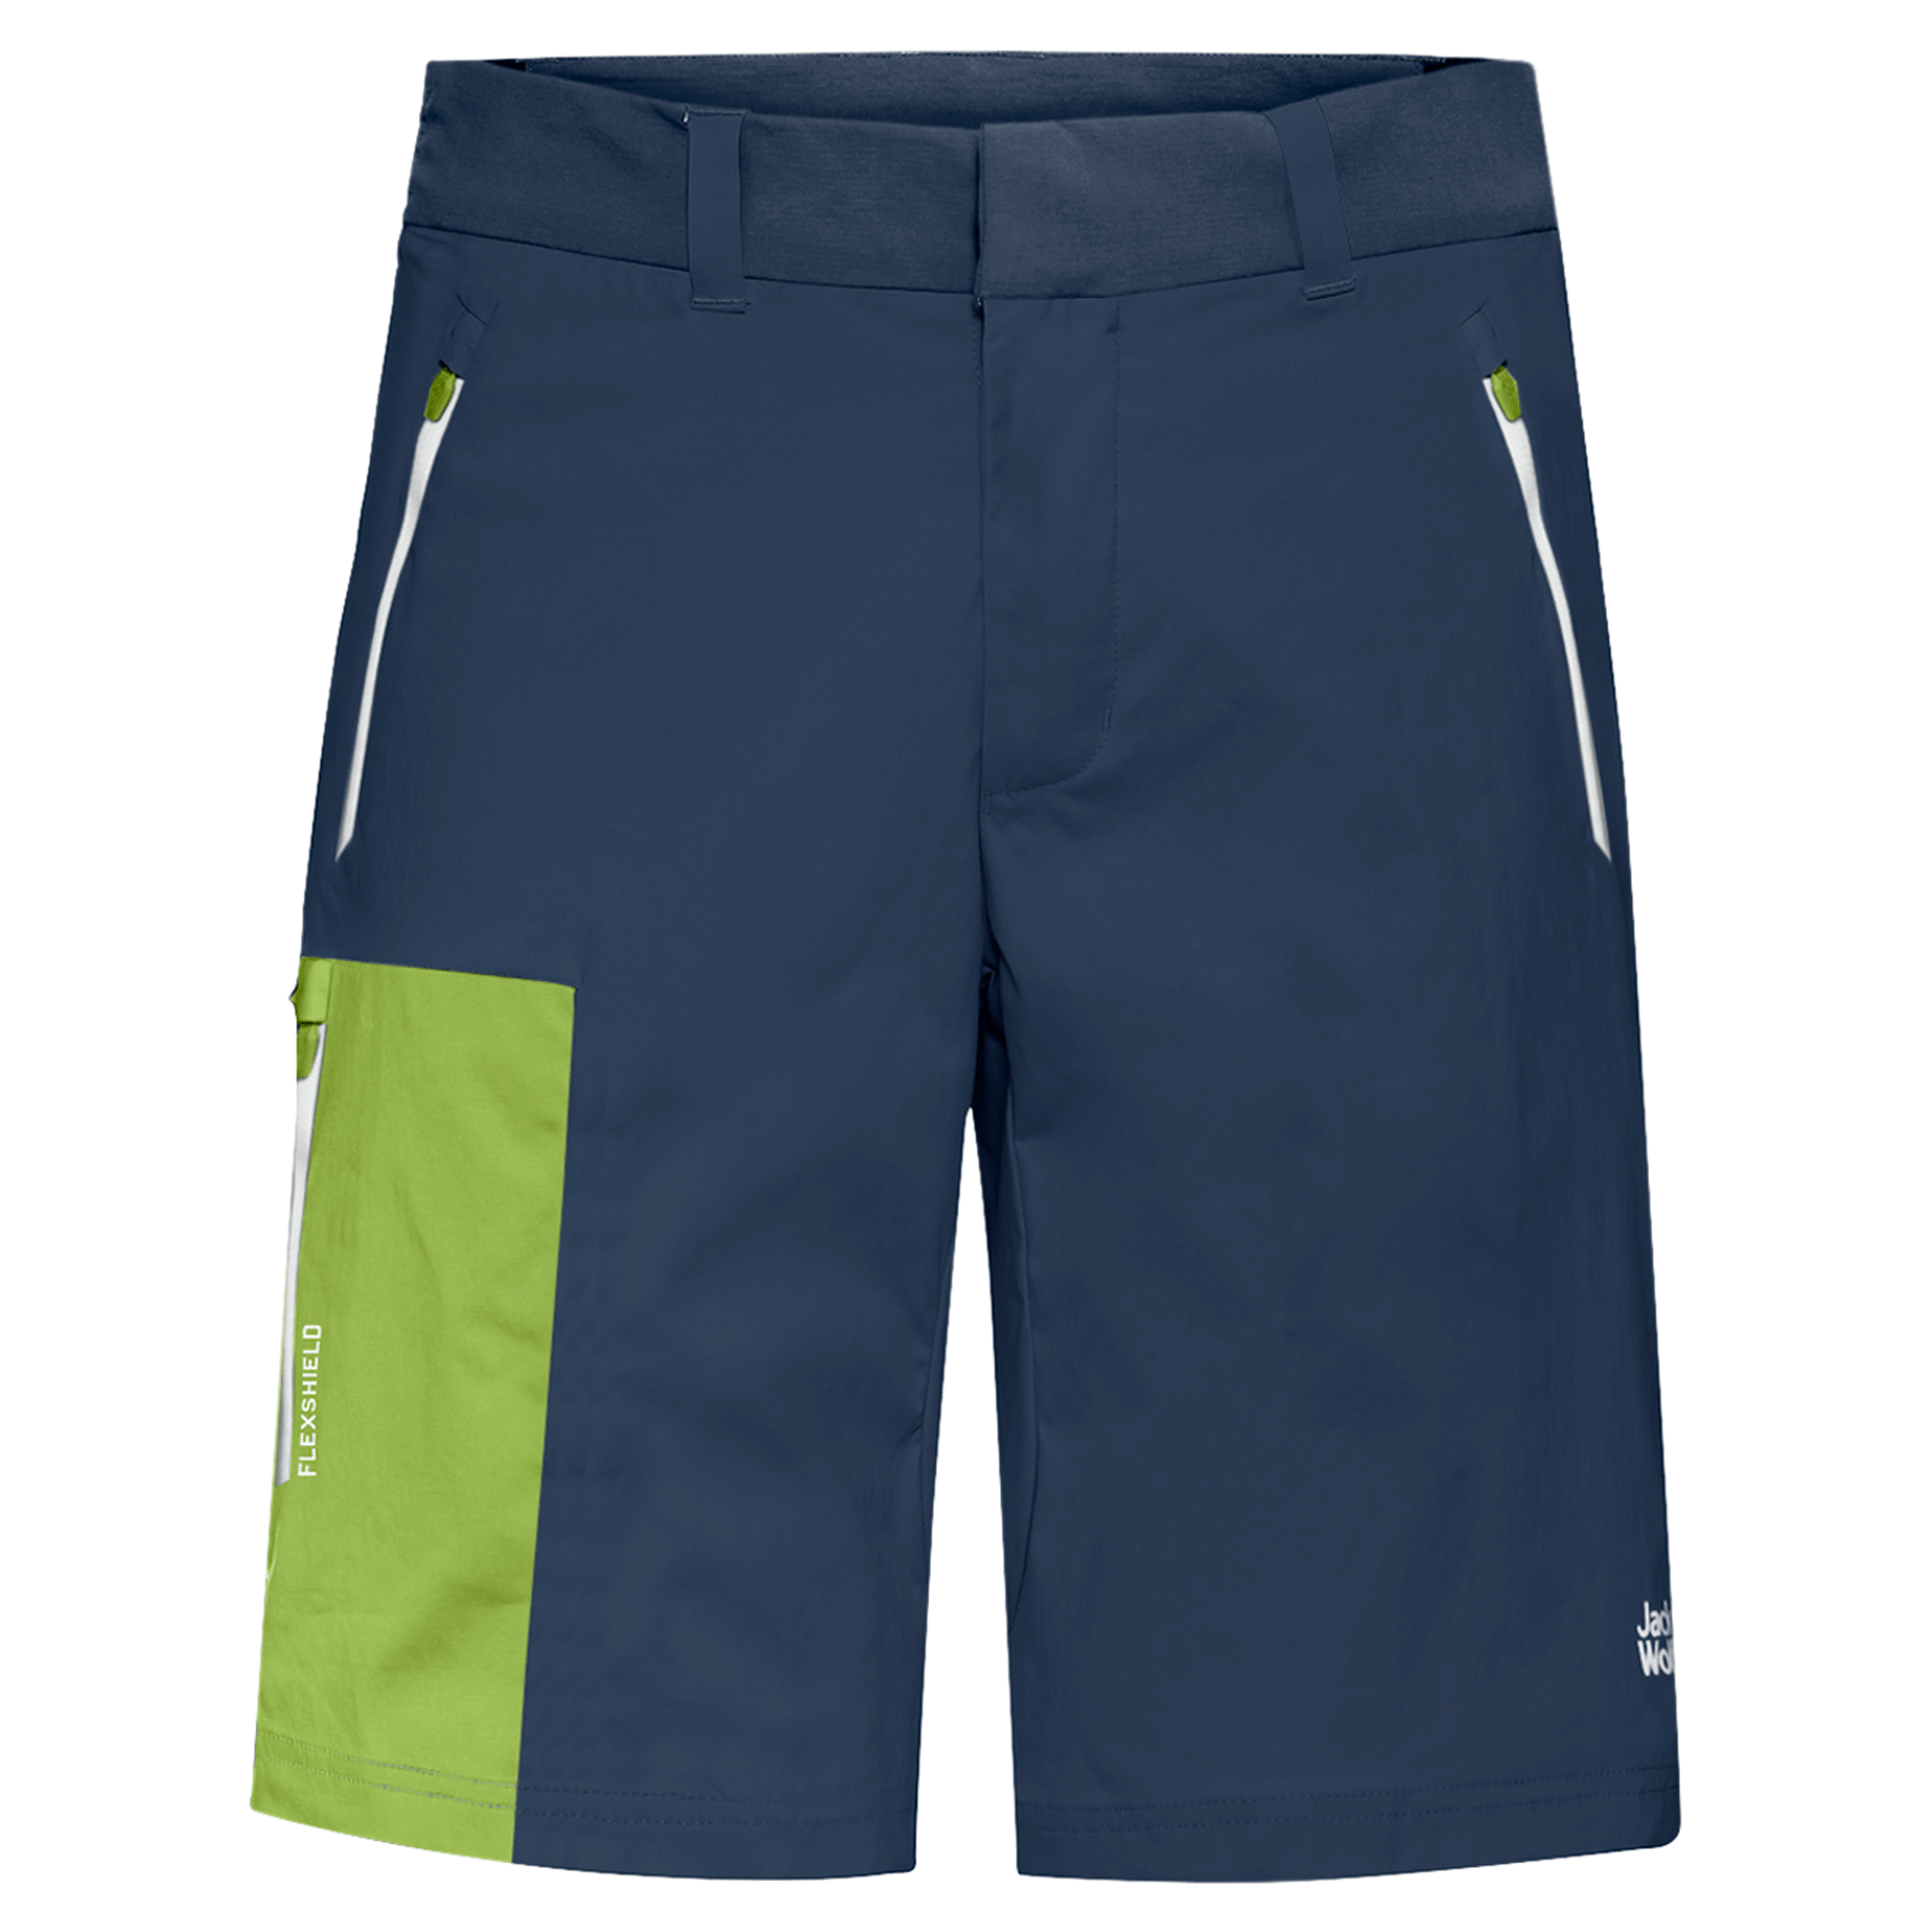 Dark Indigo Hiking Short Men